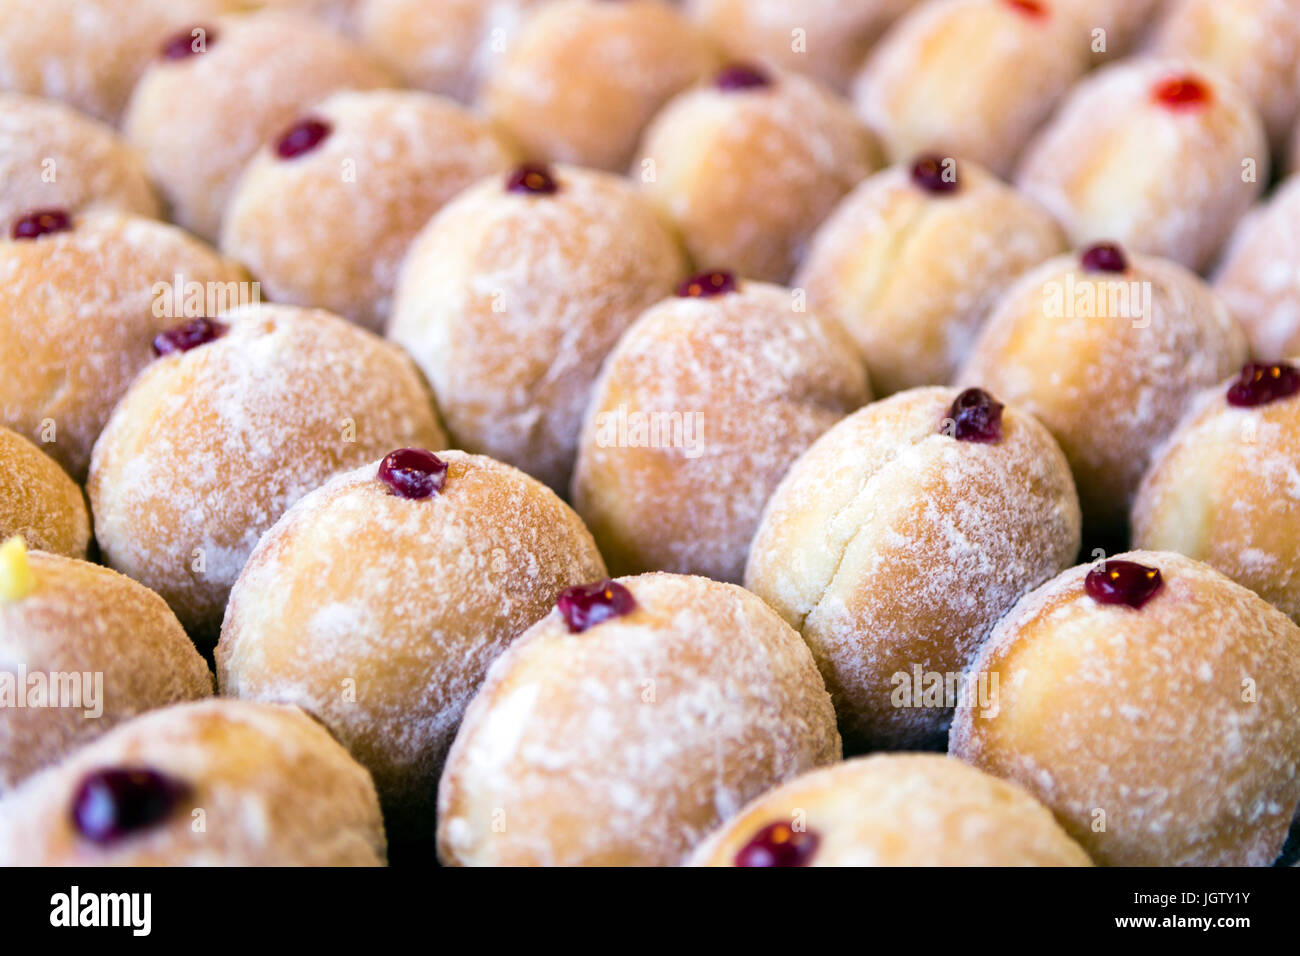 Jelly doughnuts on display in a bakery. - Stock Image